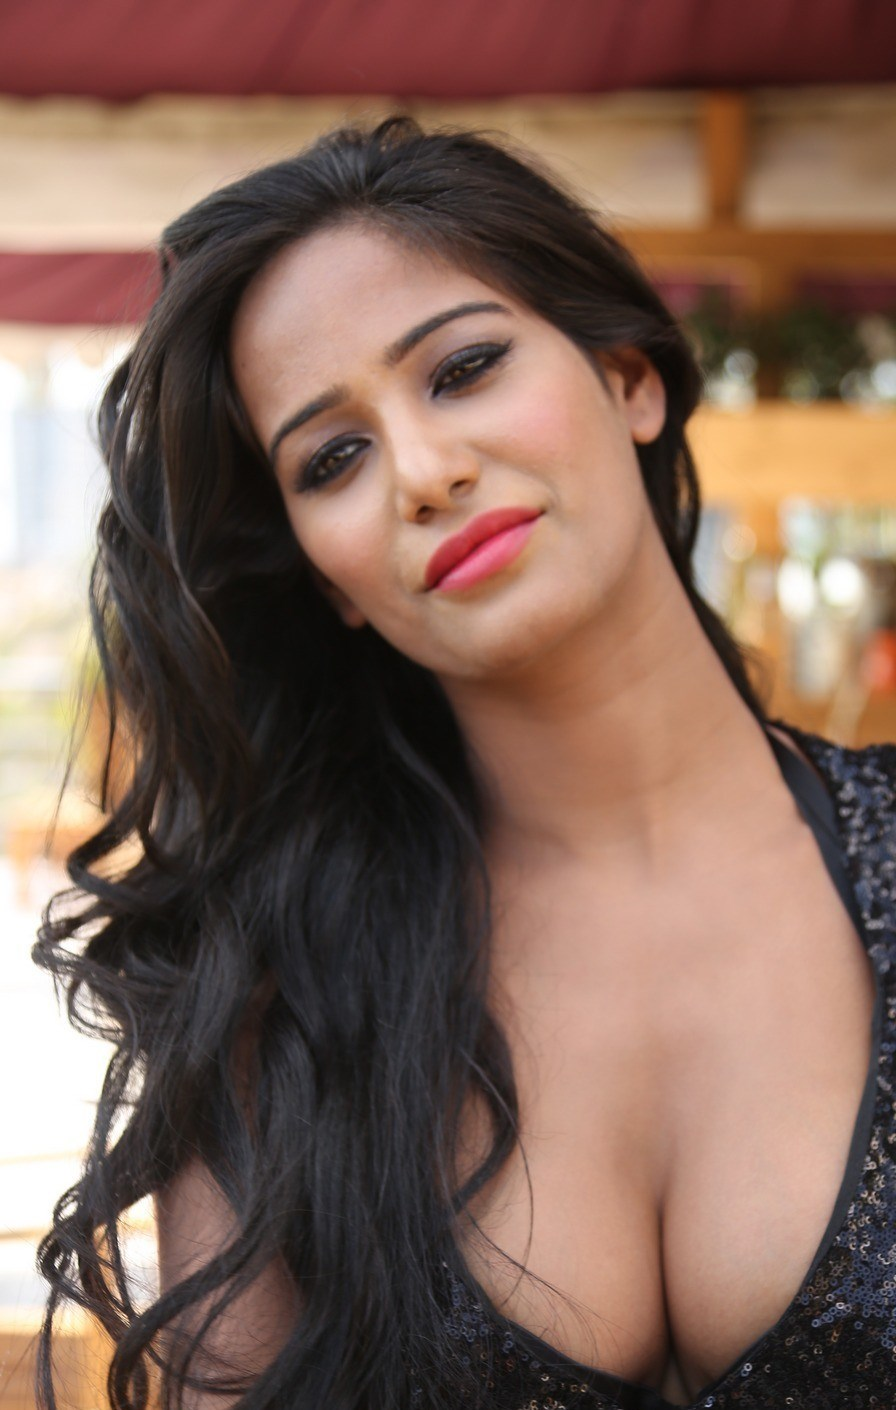 Hot Poonam Pandey nude photos 2019